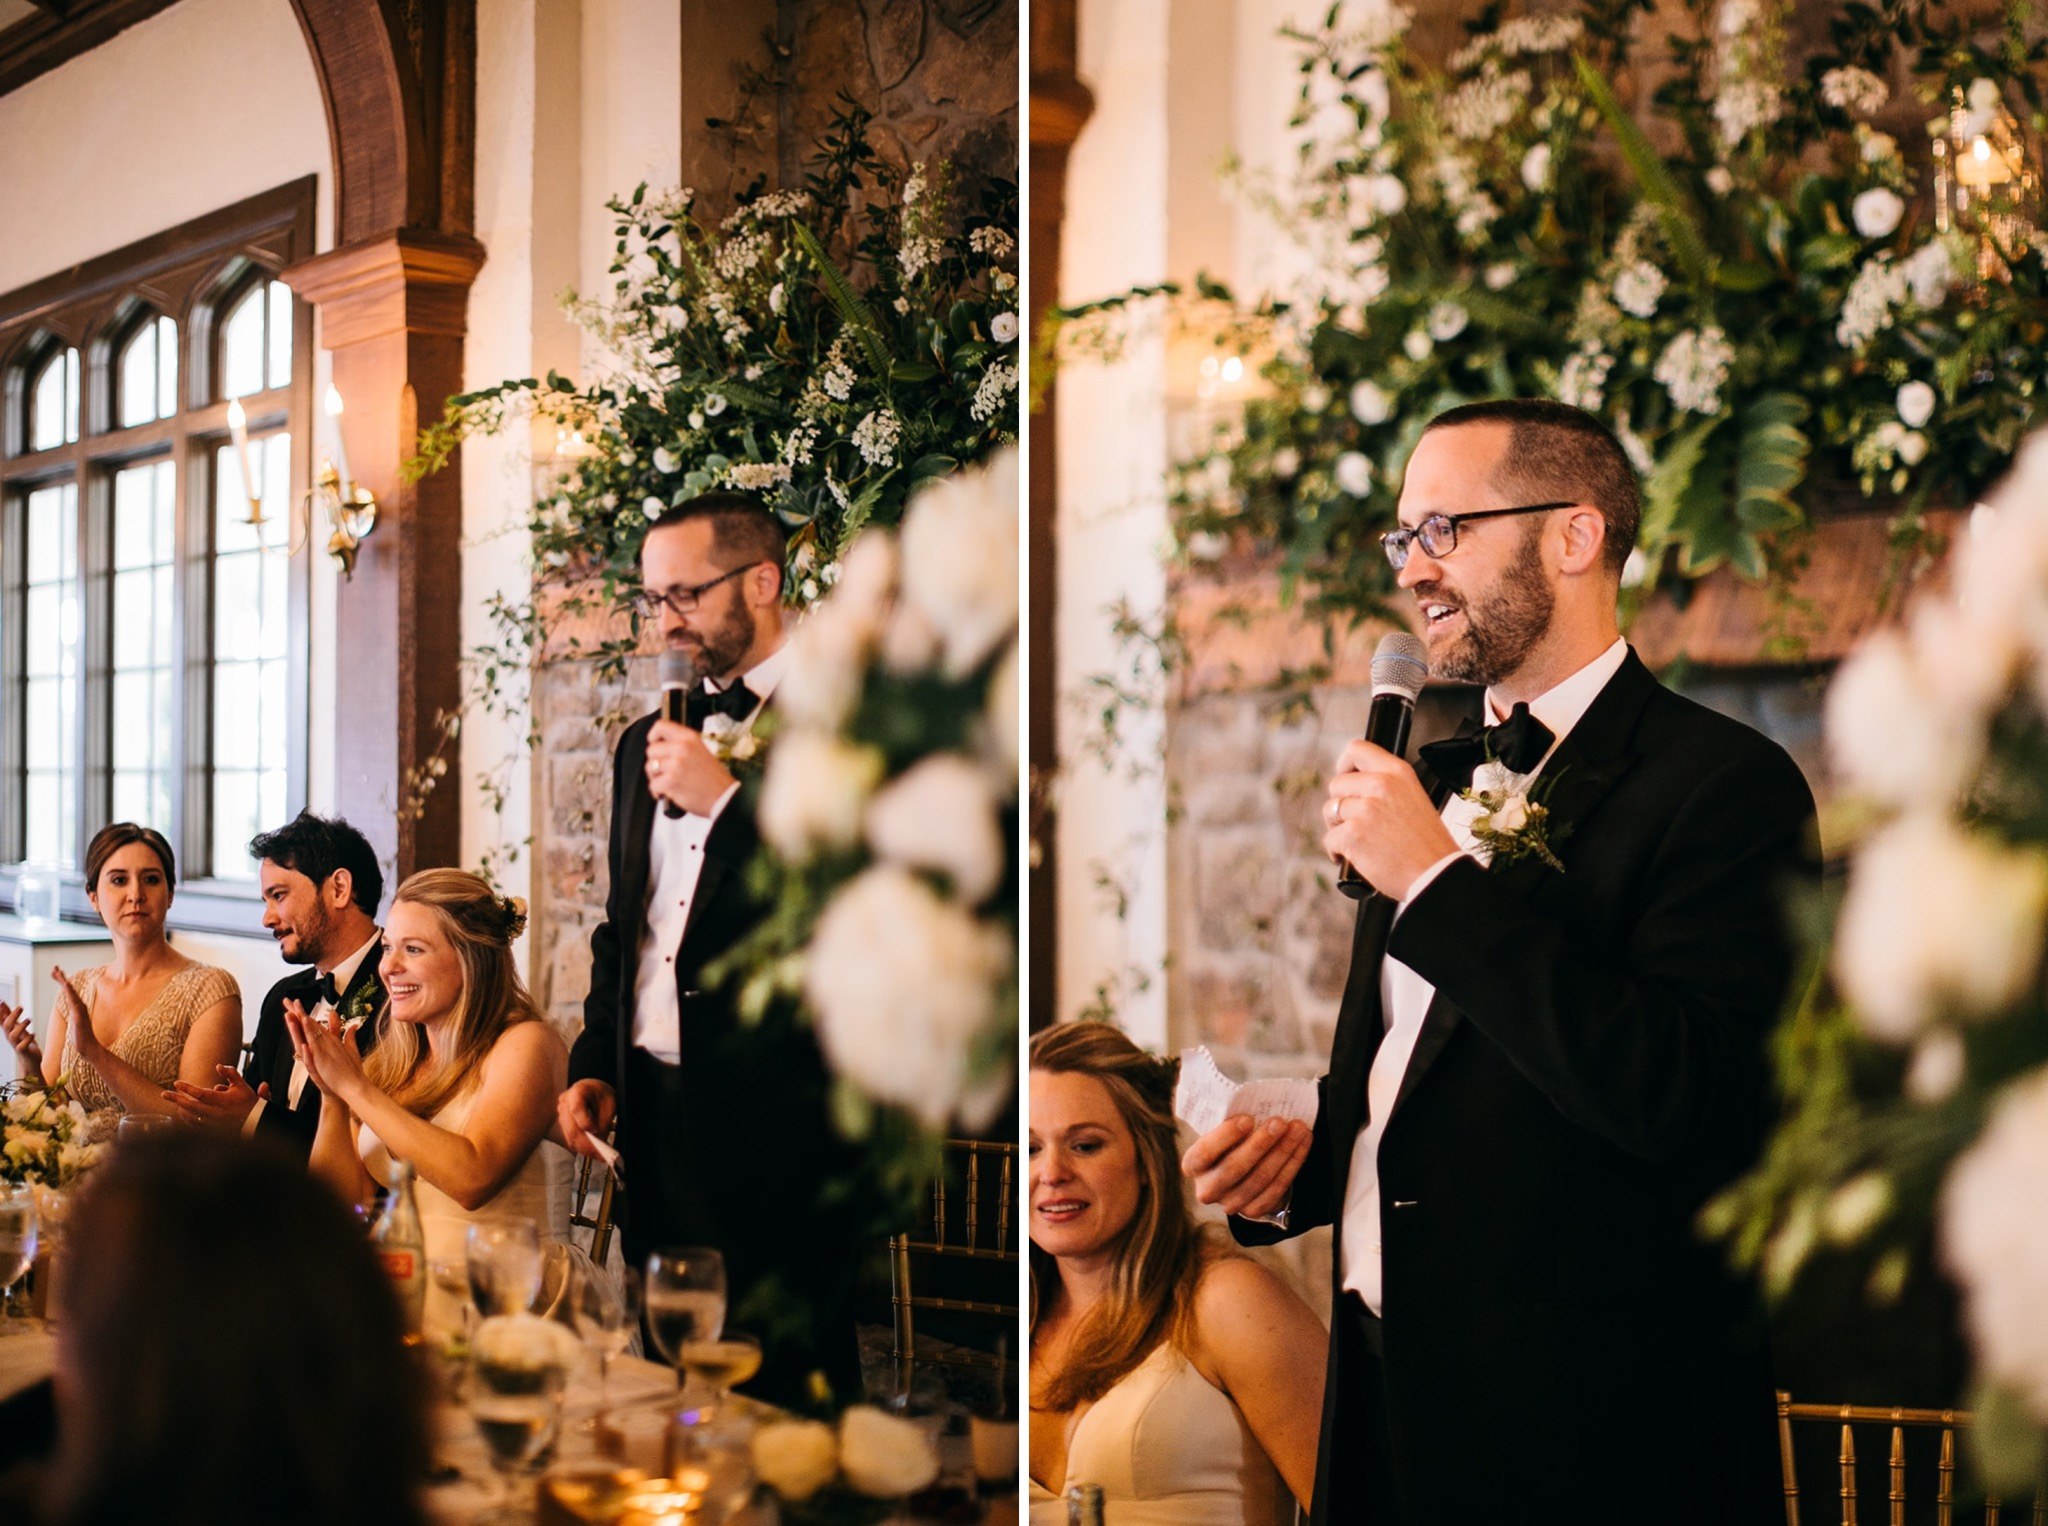 man stands next to bride and groom and gives his wedding toast into a microphone